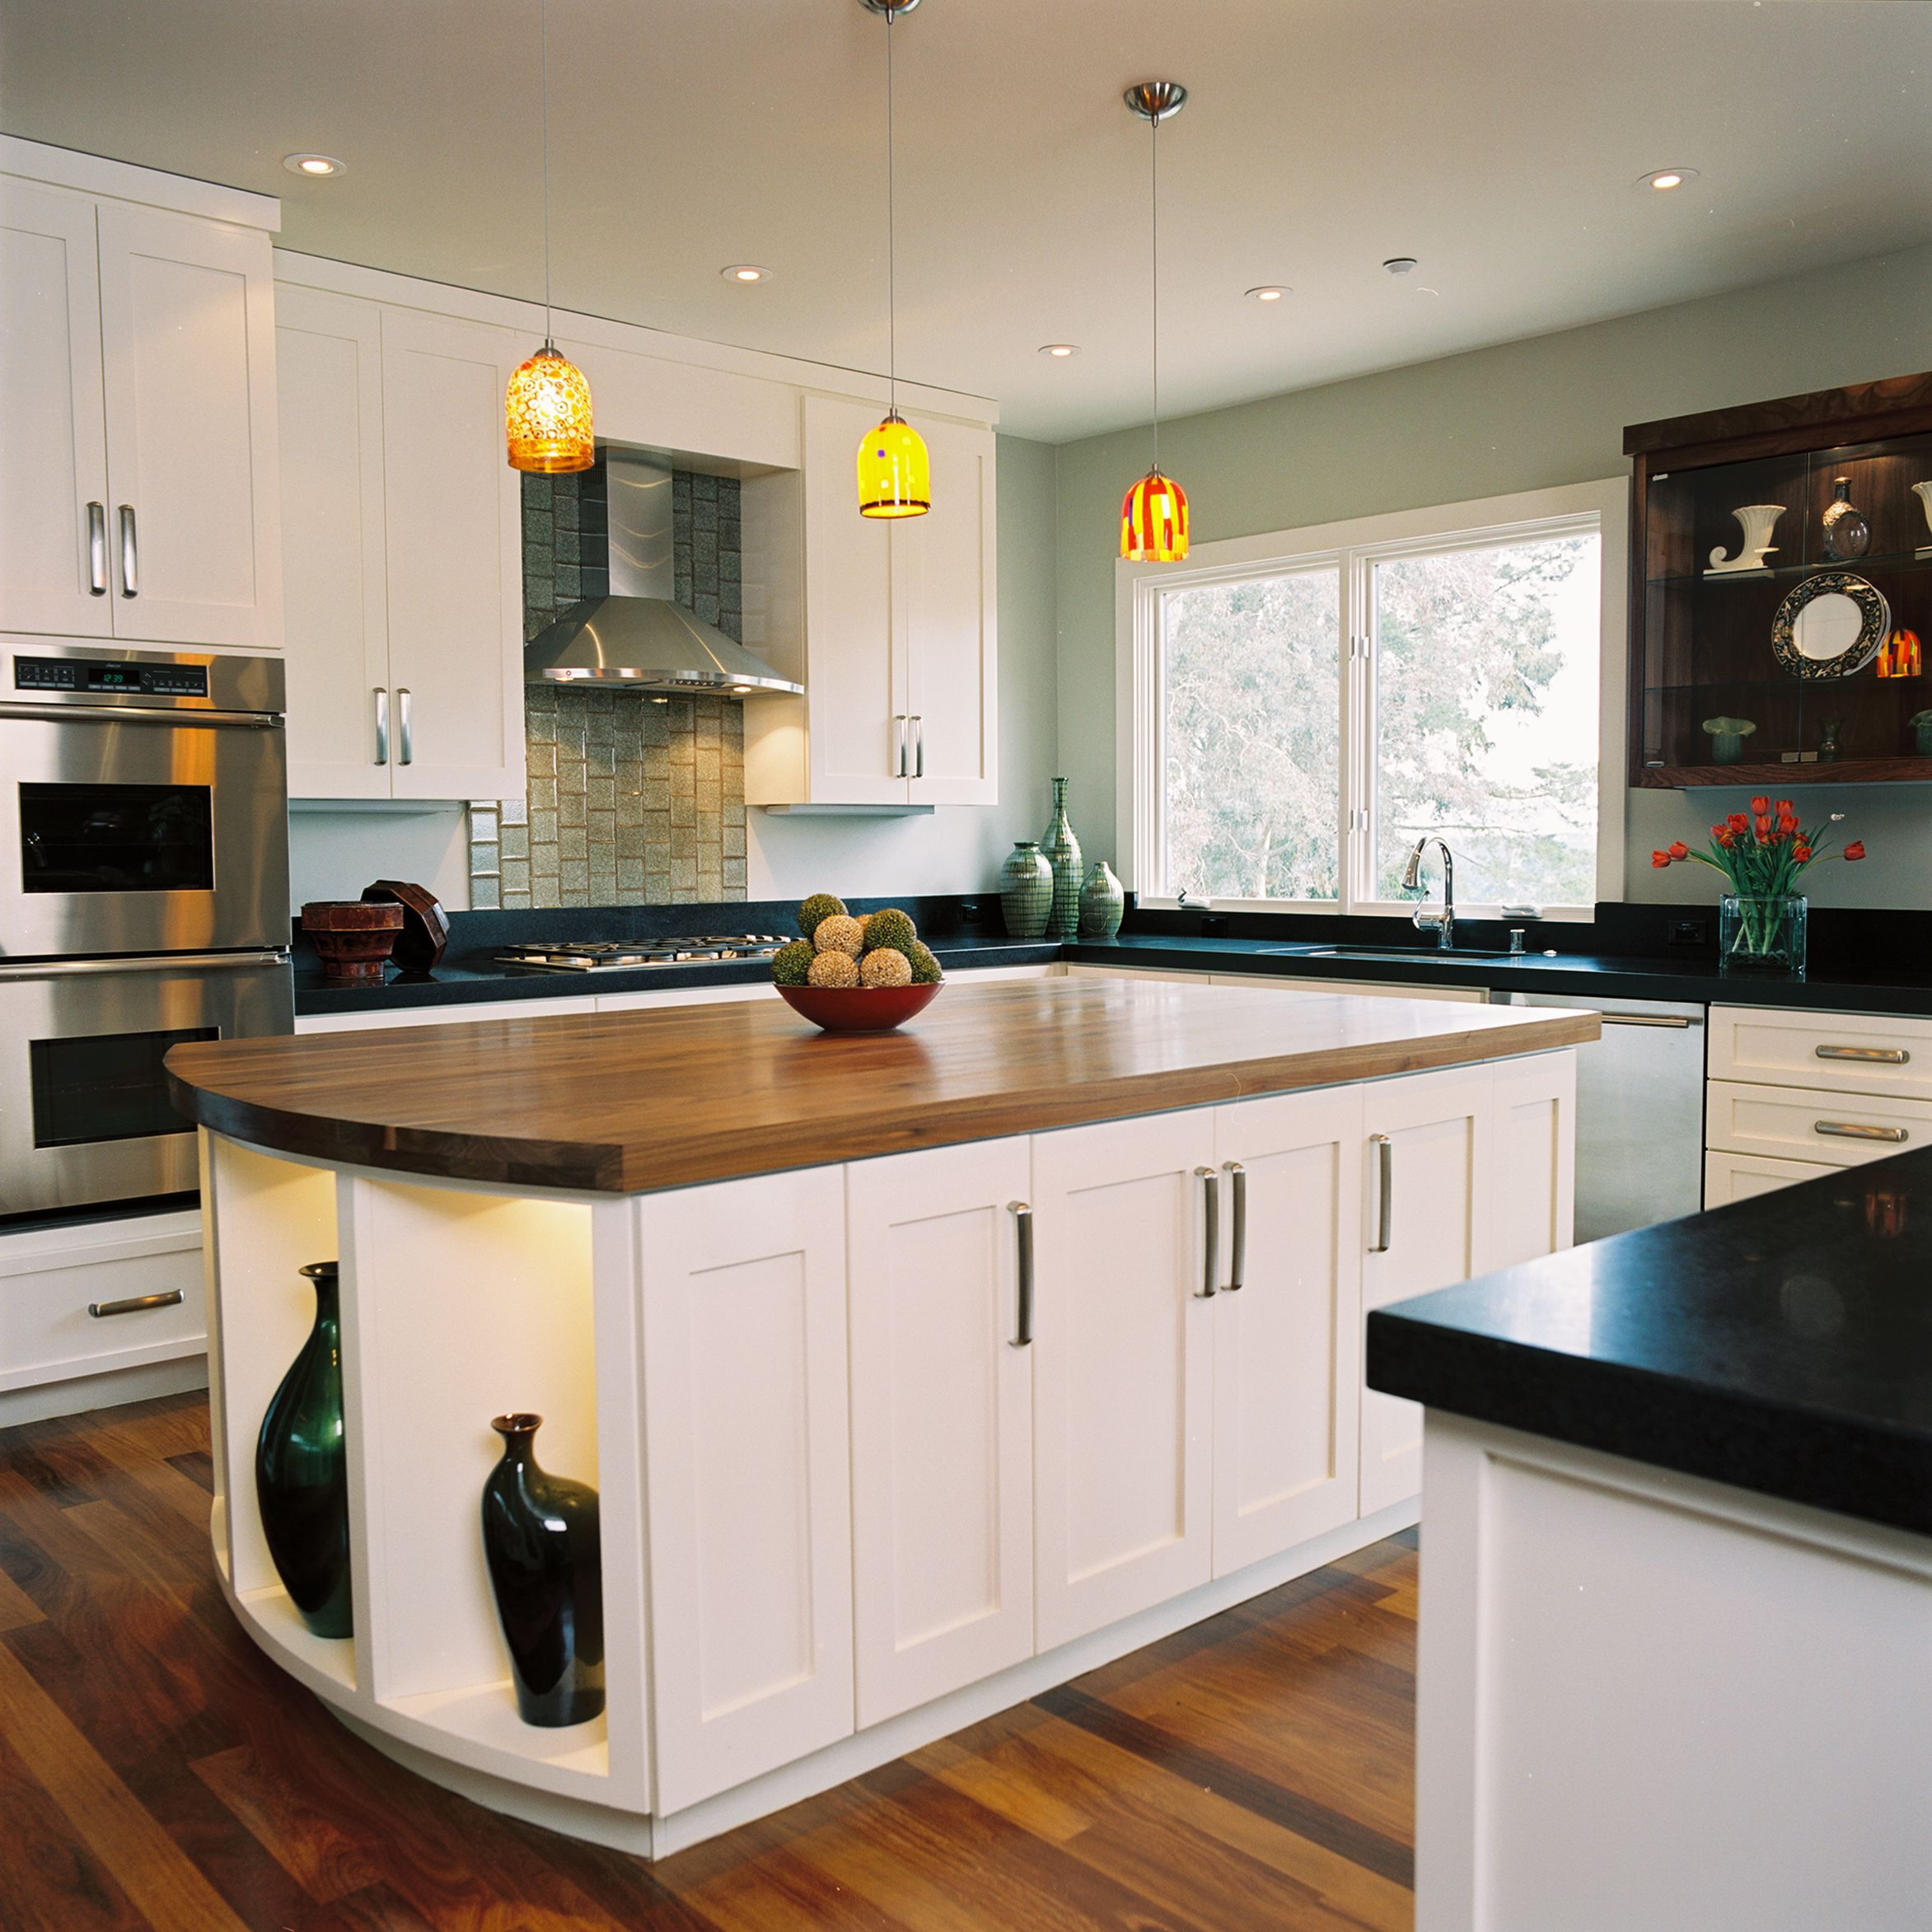 accent shelving in island and stainless steel appliances